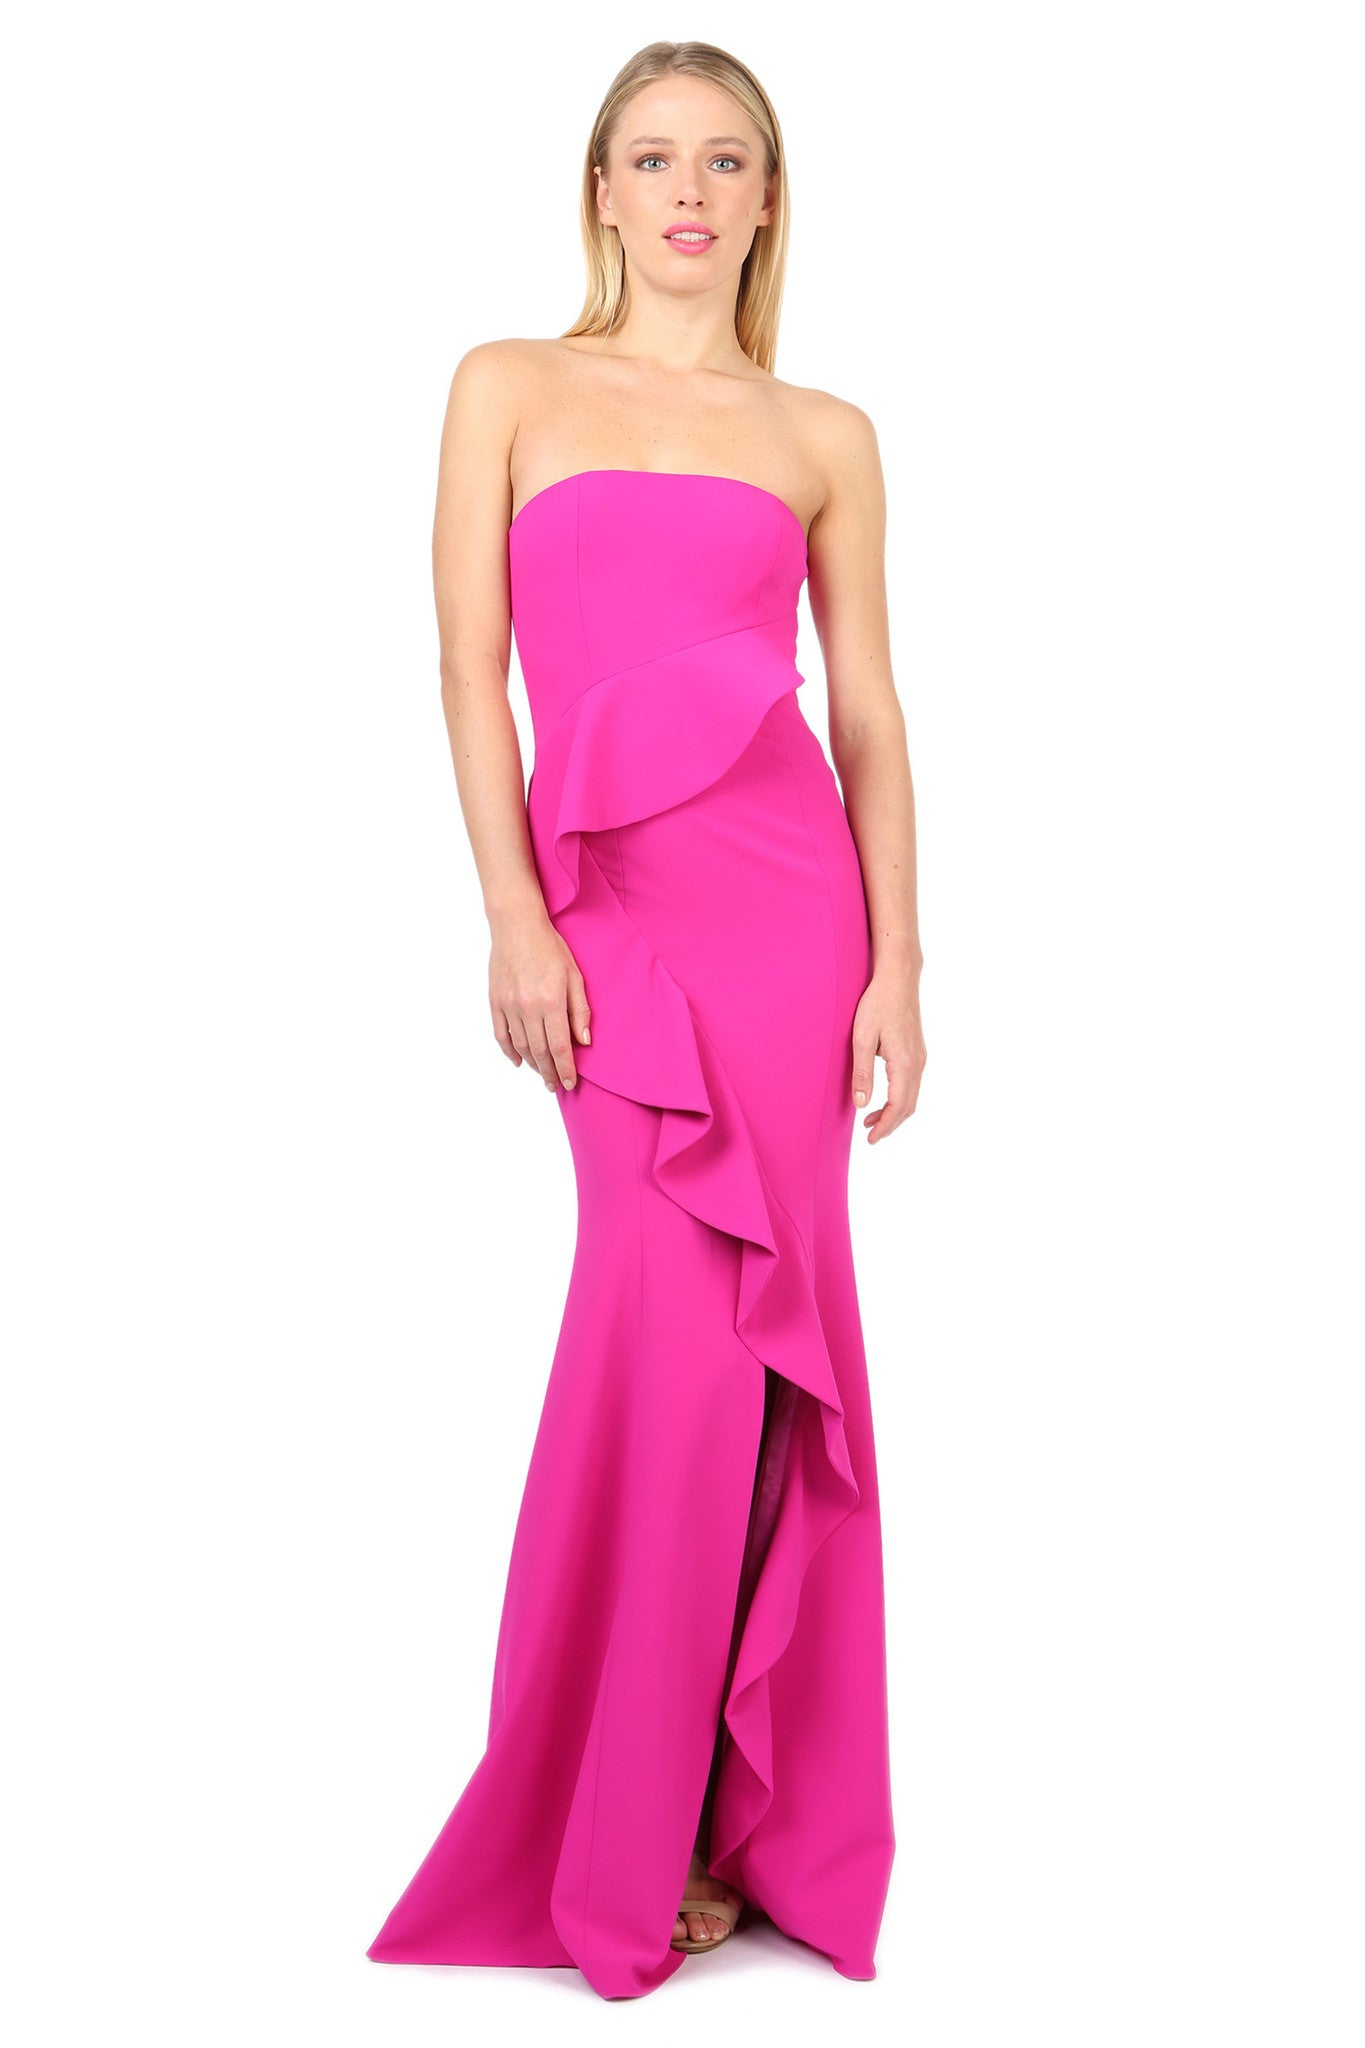 Jay Godfrey Fuchsia Strapless Ruffle Gown - Front View